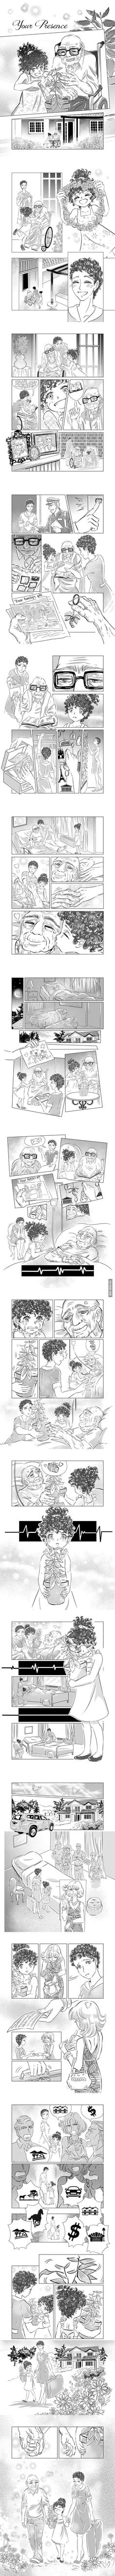 The last gift of love (Art By: Eliana Mauceri) (Money is not everything 'cuz you can't buy happiness with money) More memes, funny videos and pics on Happy Stories, Cute Stories, Funny Photos Of People, Best Funny Pictures, Money Is Not Everything, Image Triste, Triste Disney, Human Kindness, Comics Story